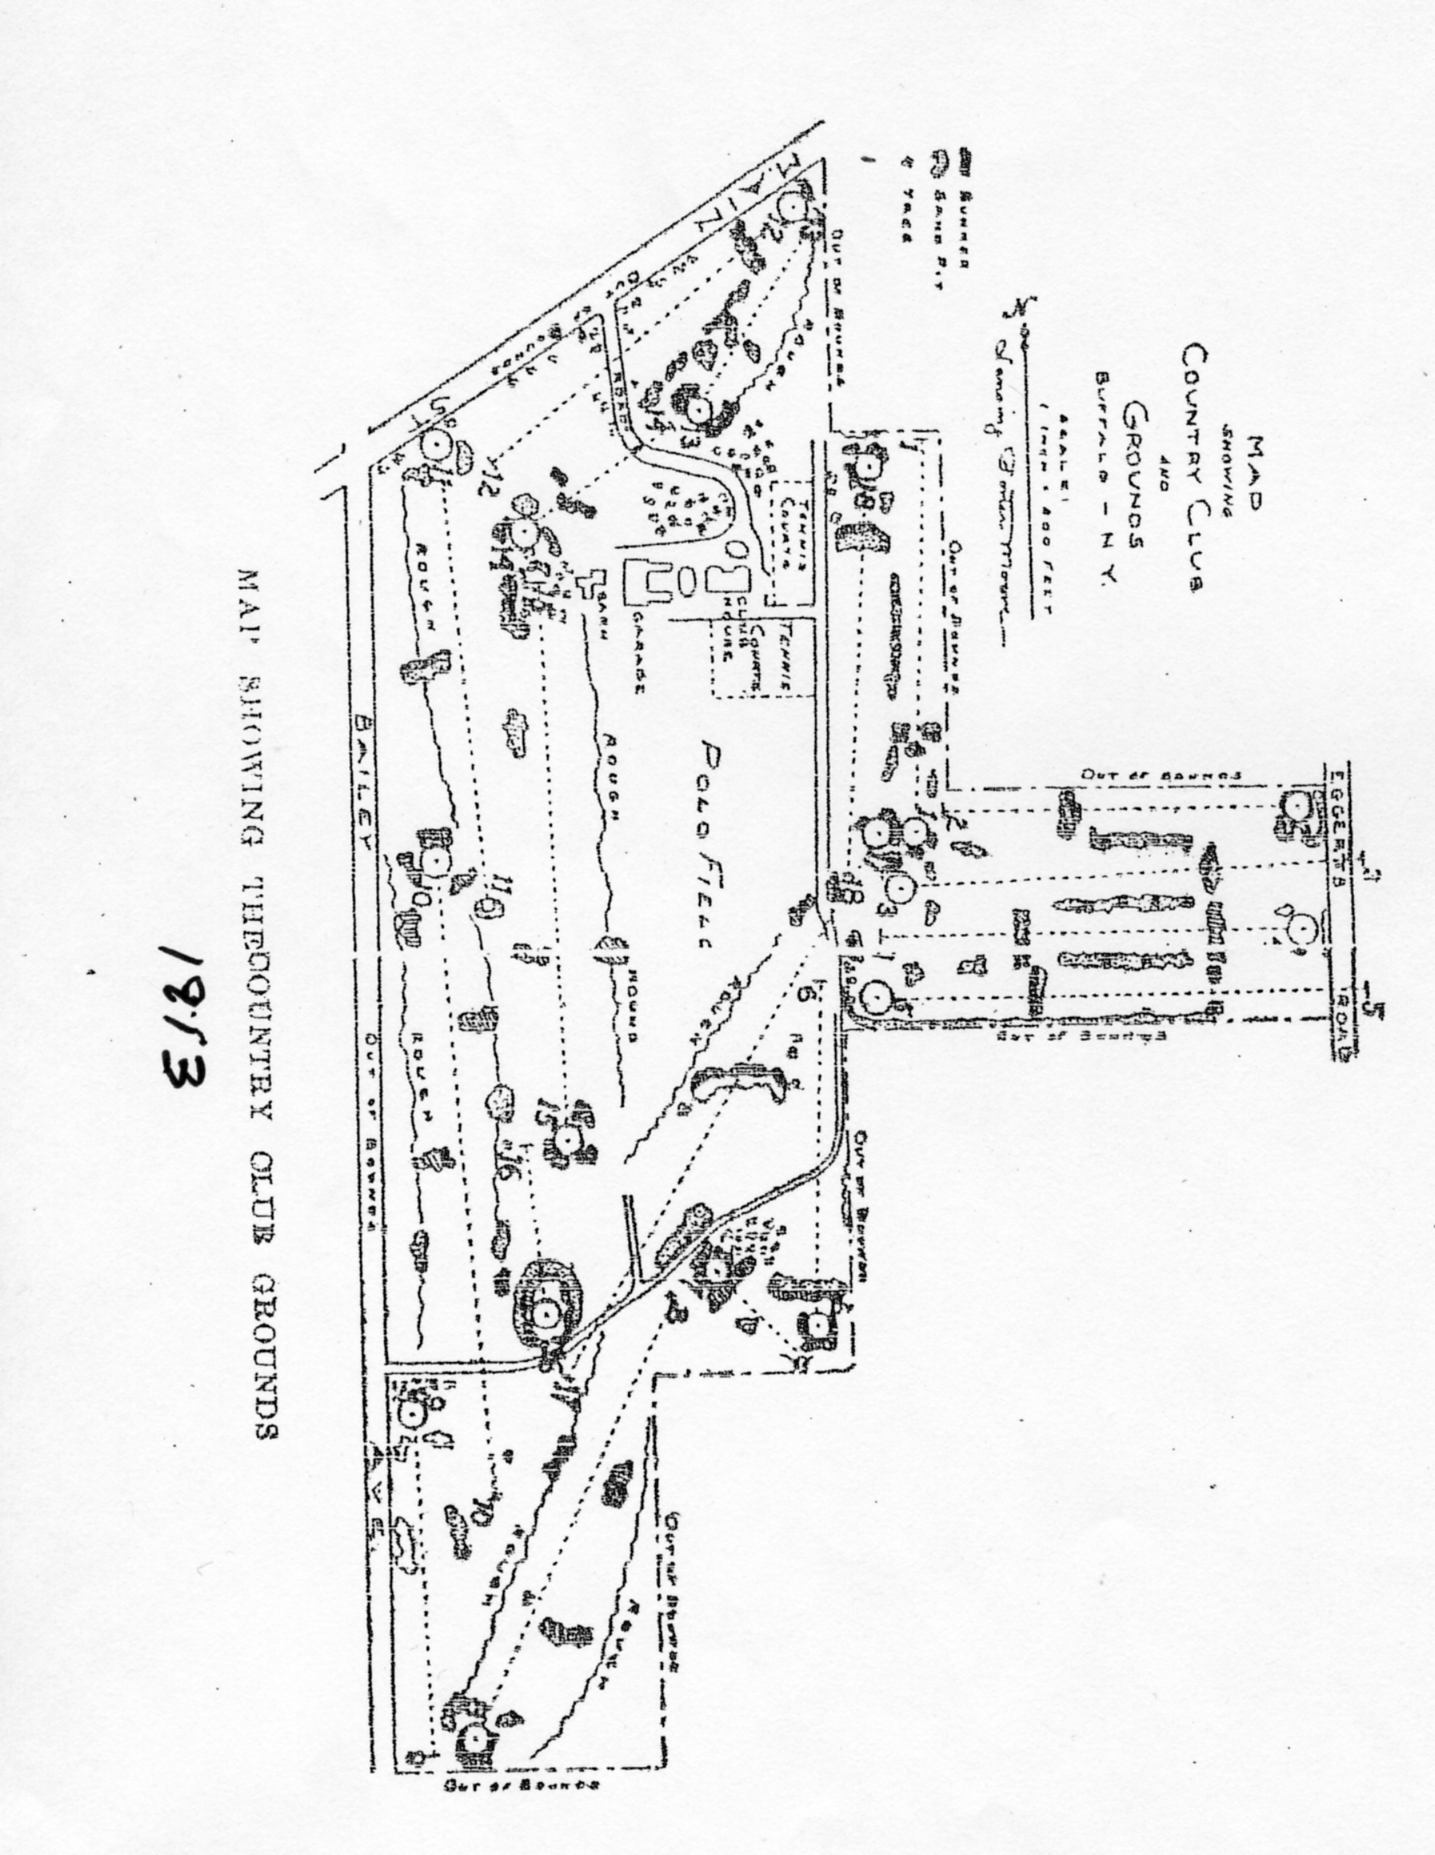 1913 CCB course map The Walter J Travis Society